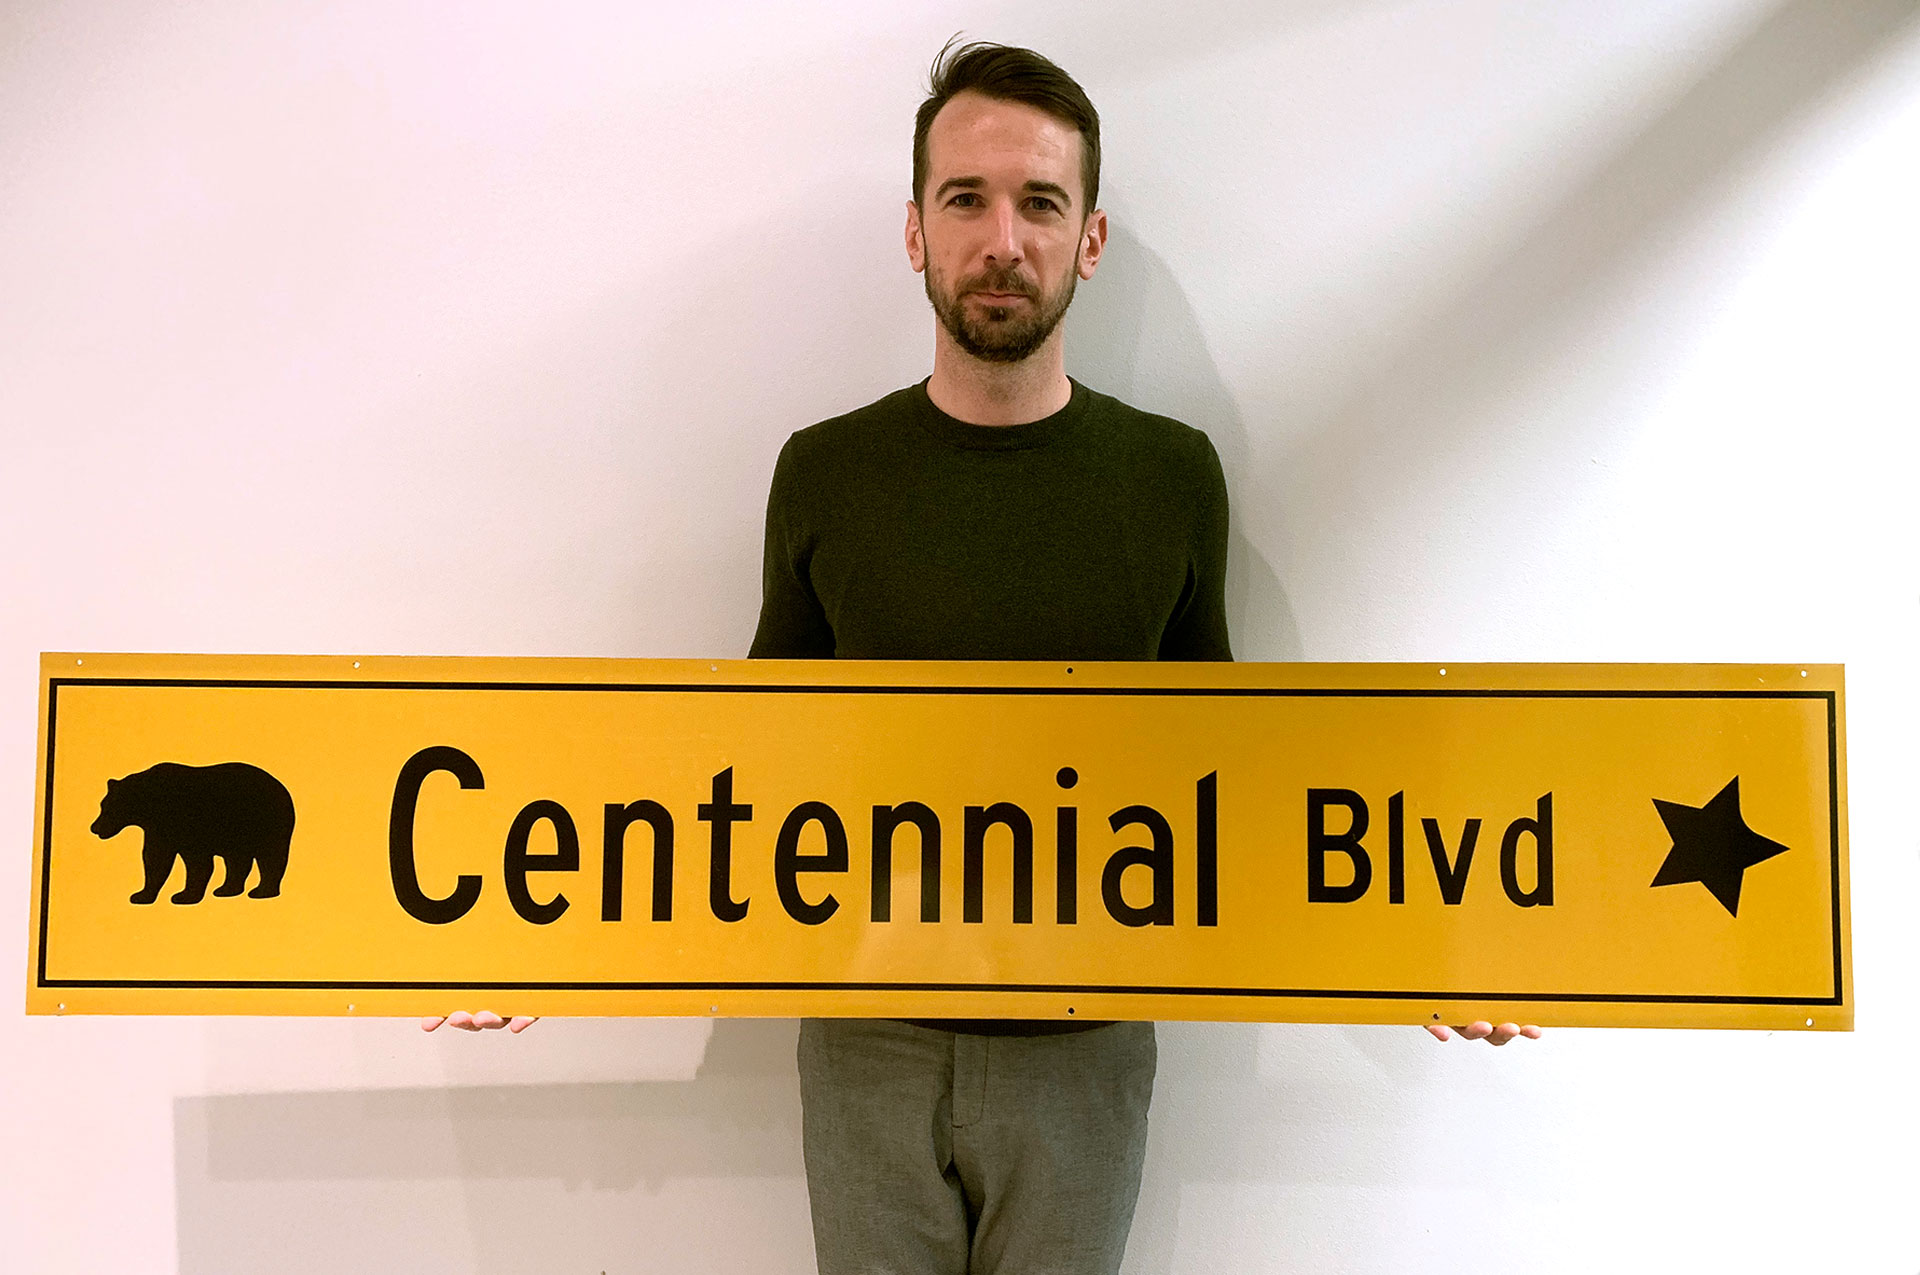 Centennial Blvd Sign